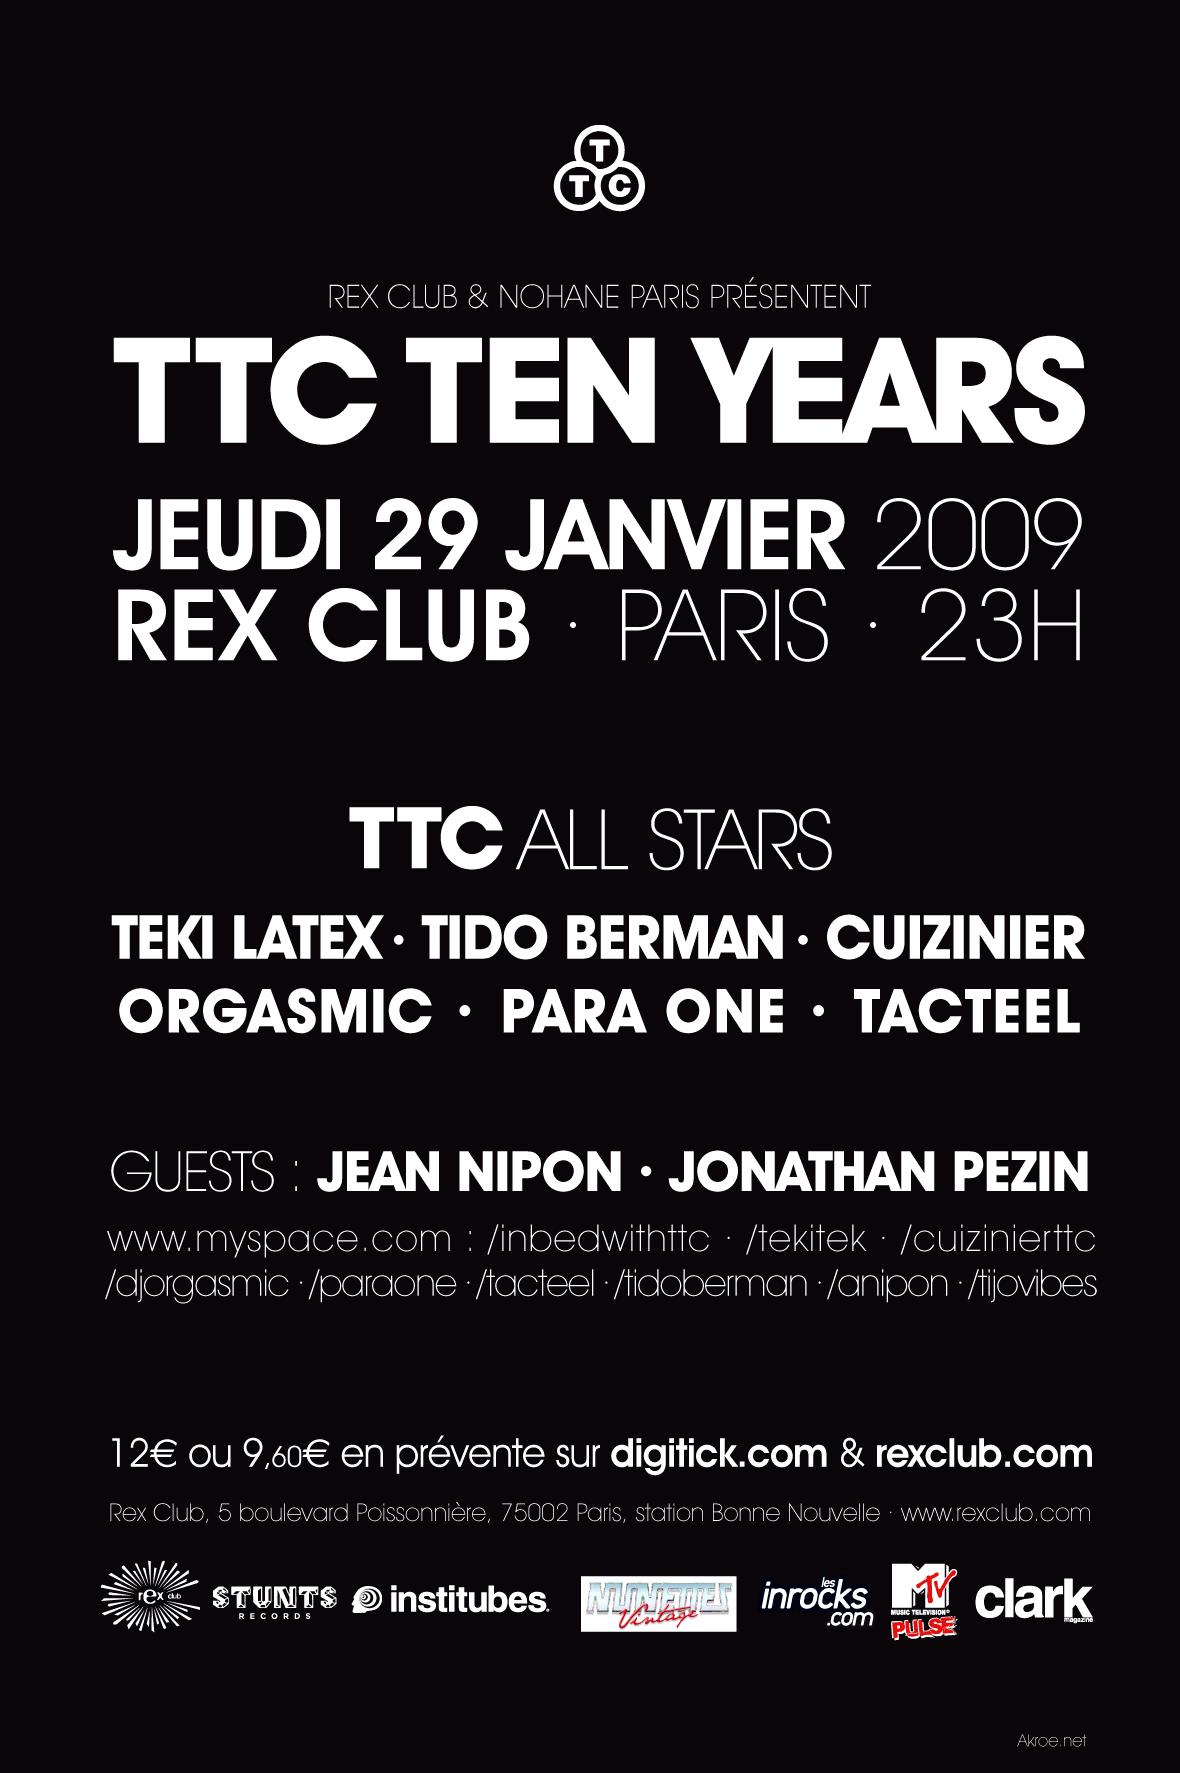 TTC 10 years party @ Rex Club